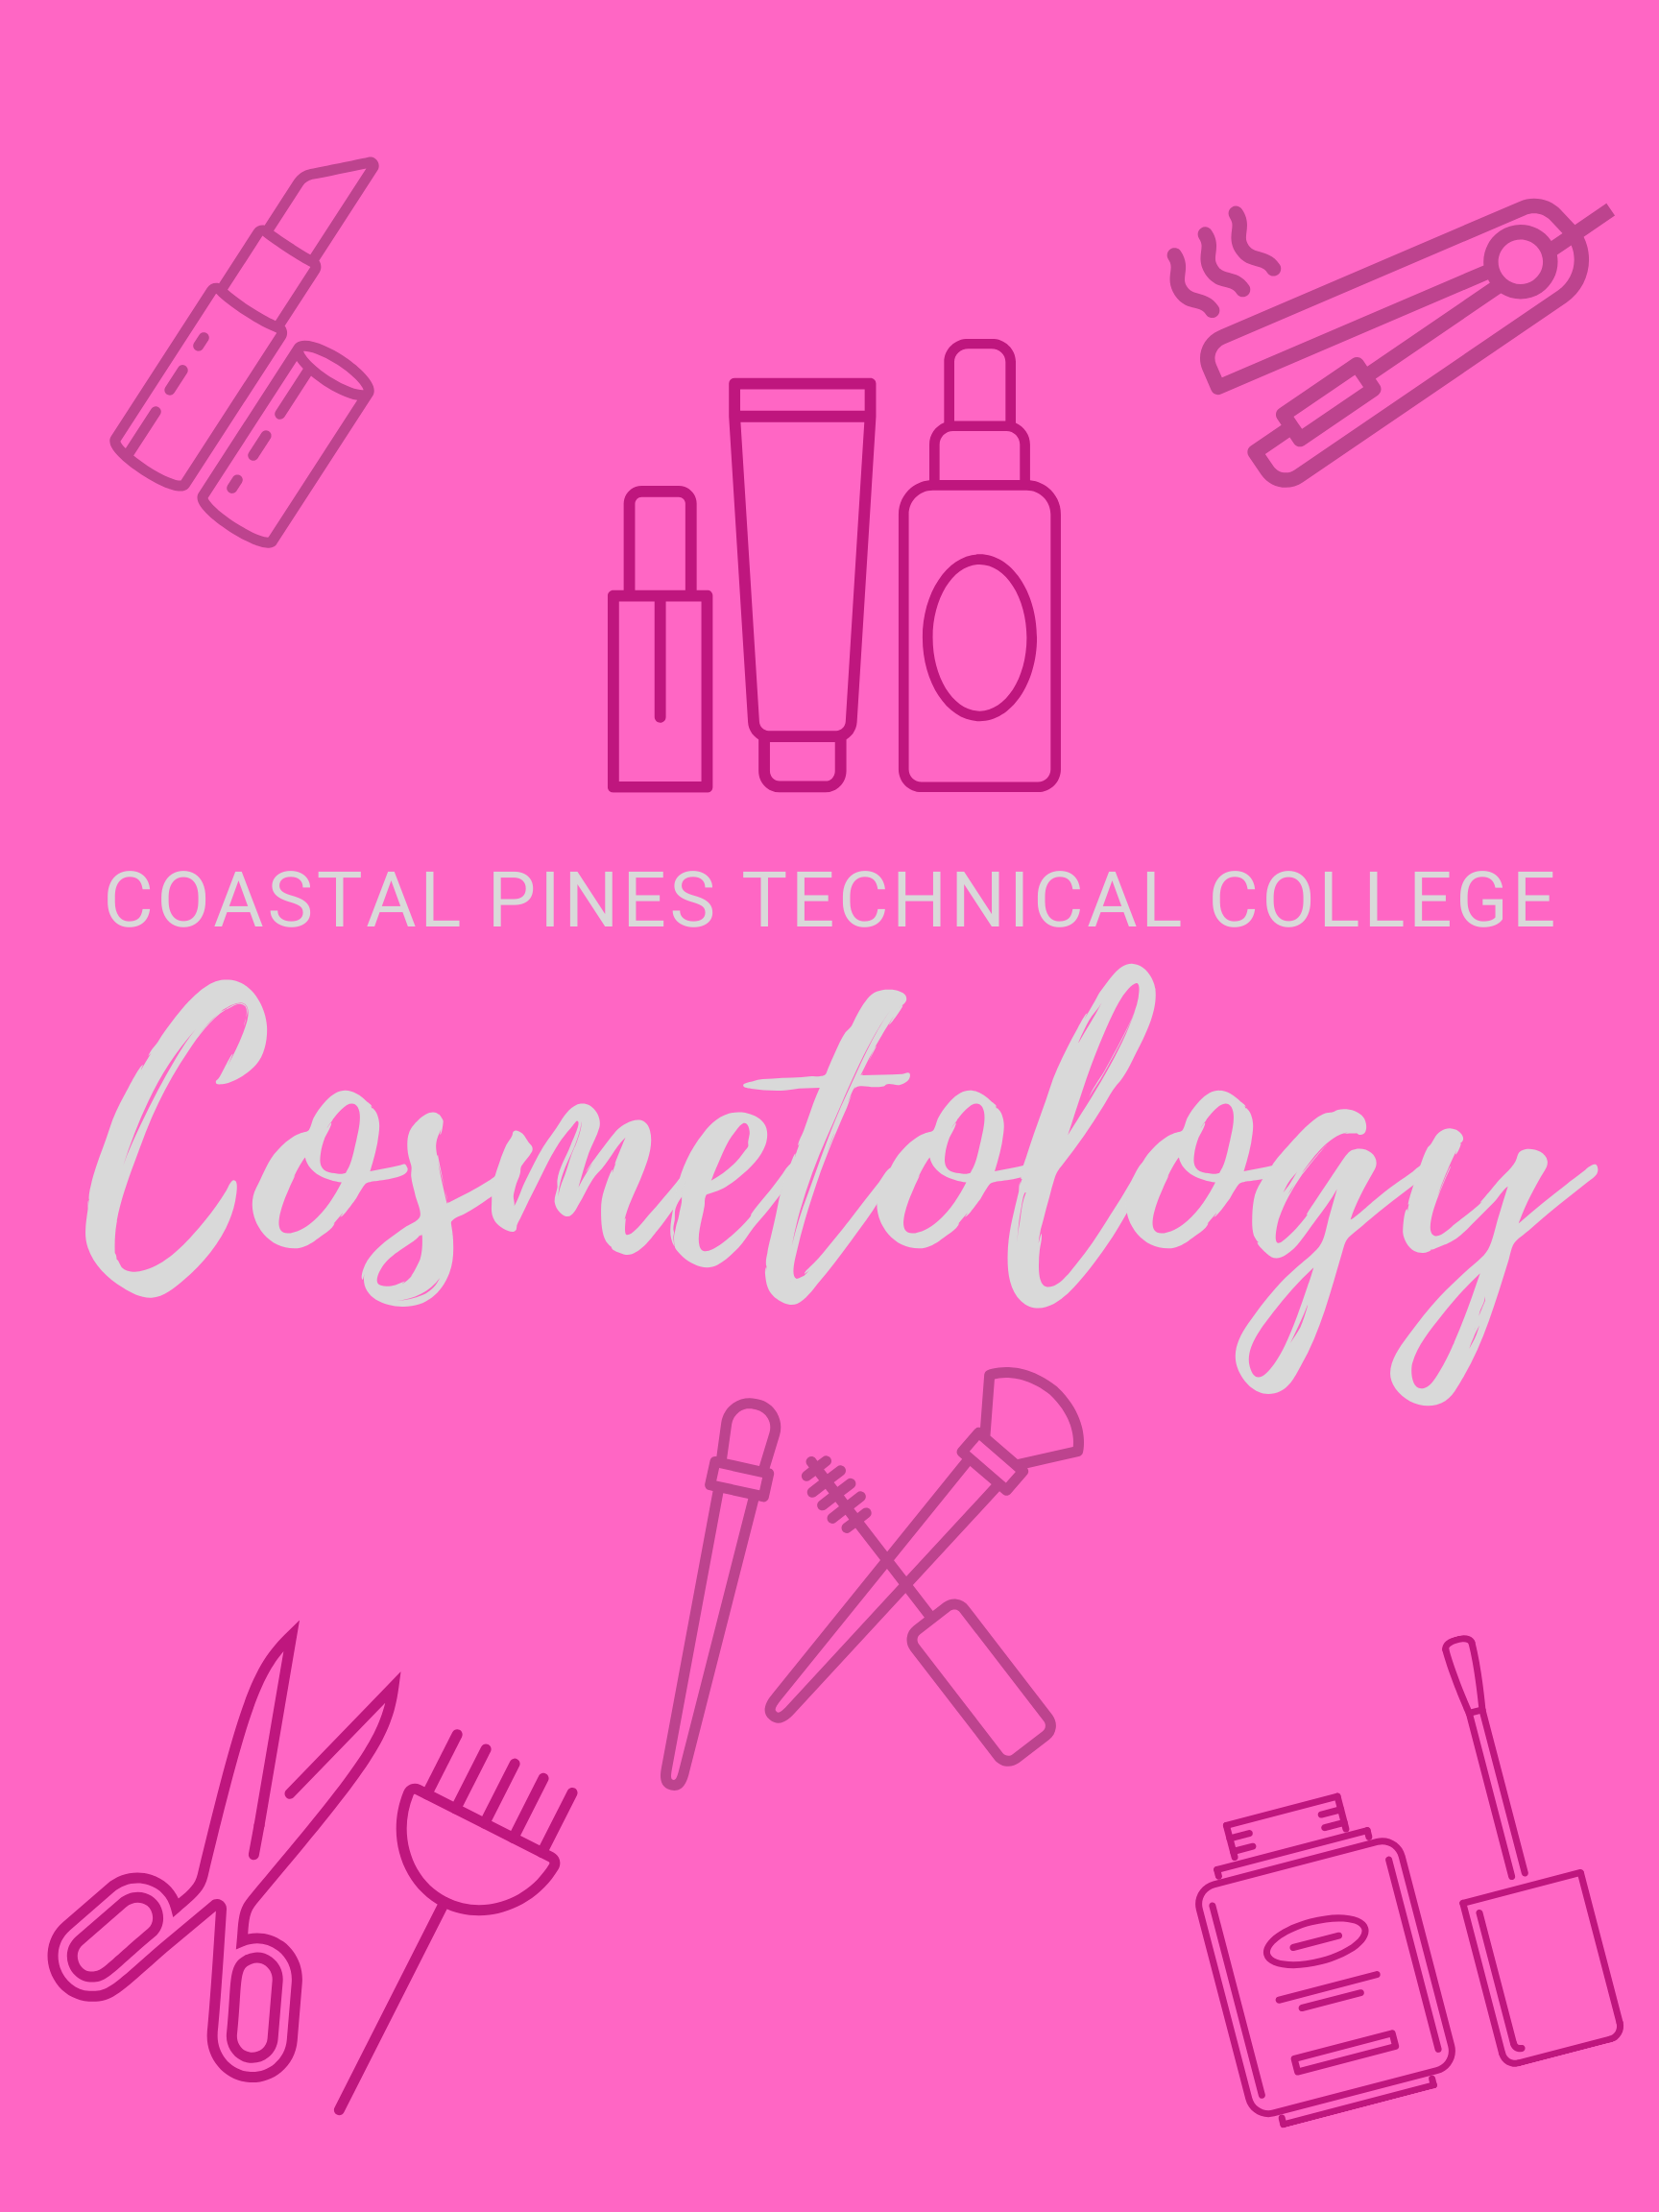 Coastal Pines Technical College Cosmetology